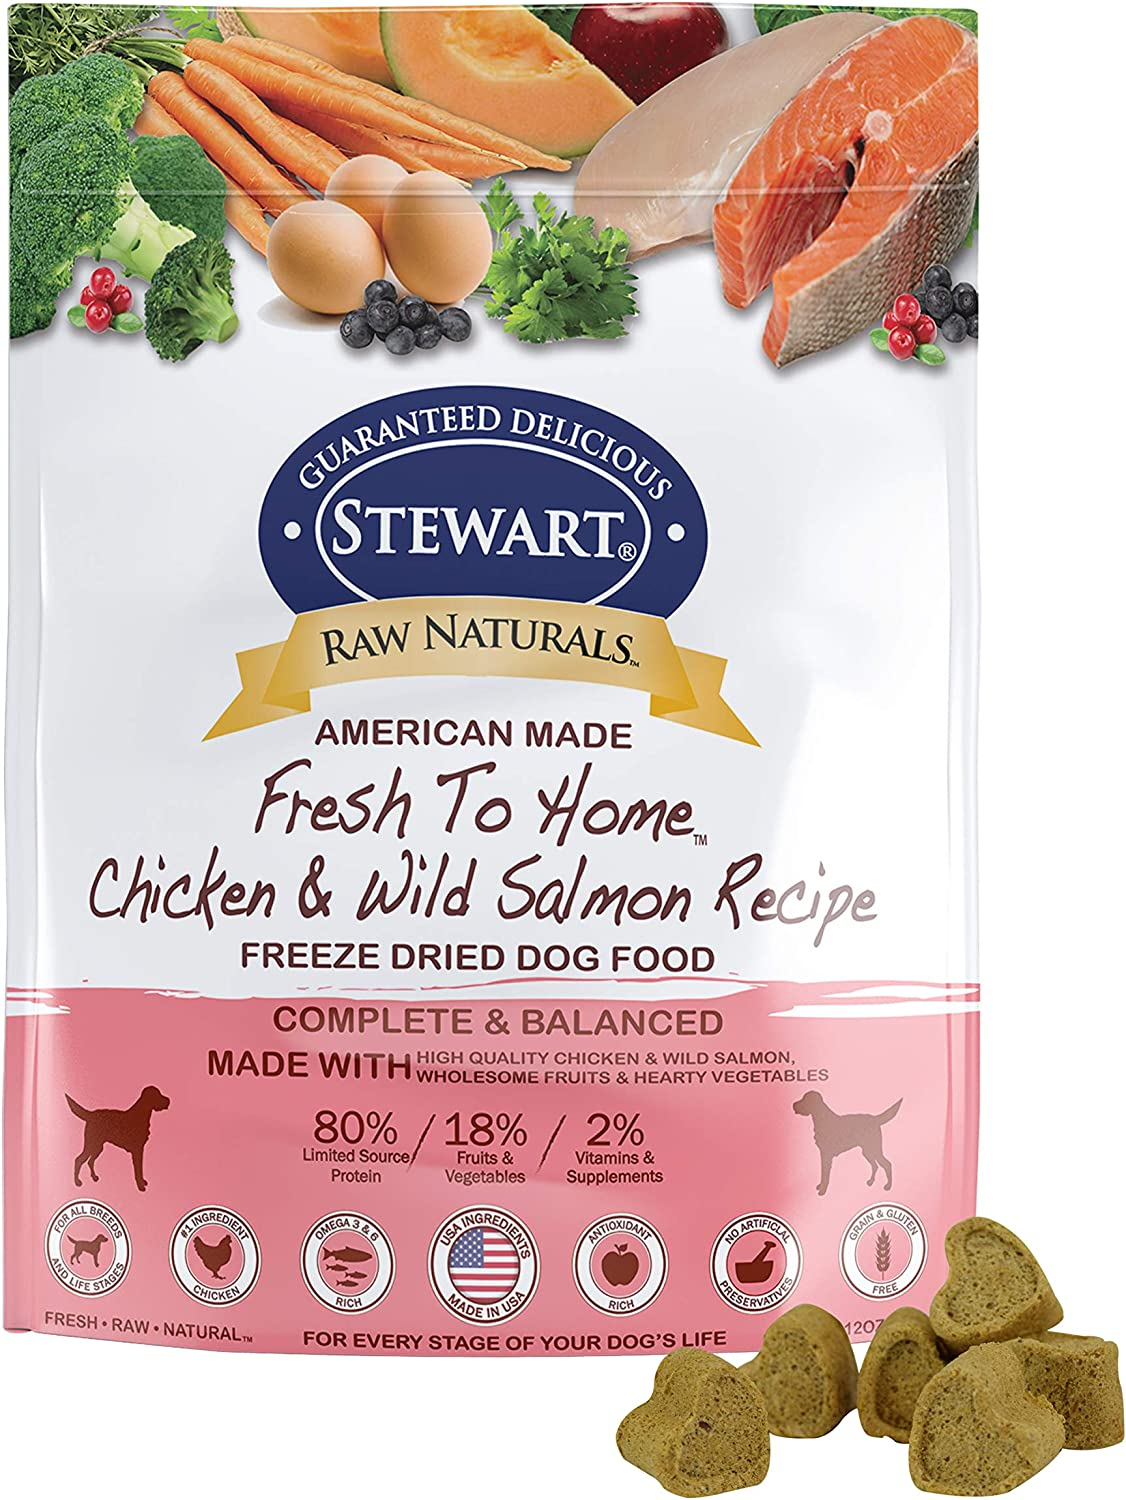 Stewart Raw Naturals Freeze Dried Dog Food Grain Free Made In Usa With Chicken Salmon Fruits Vegetables For Fresh To Home All Natural Recipe 12 Oz Pet Supplies